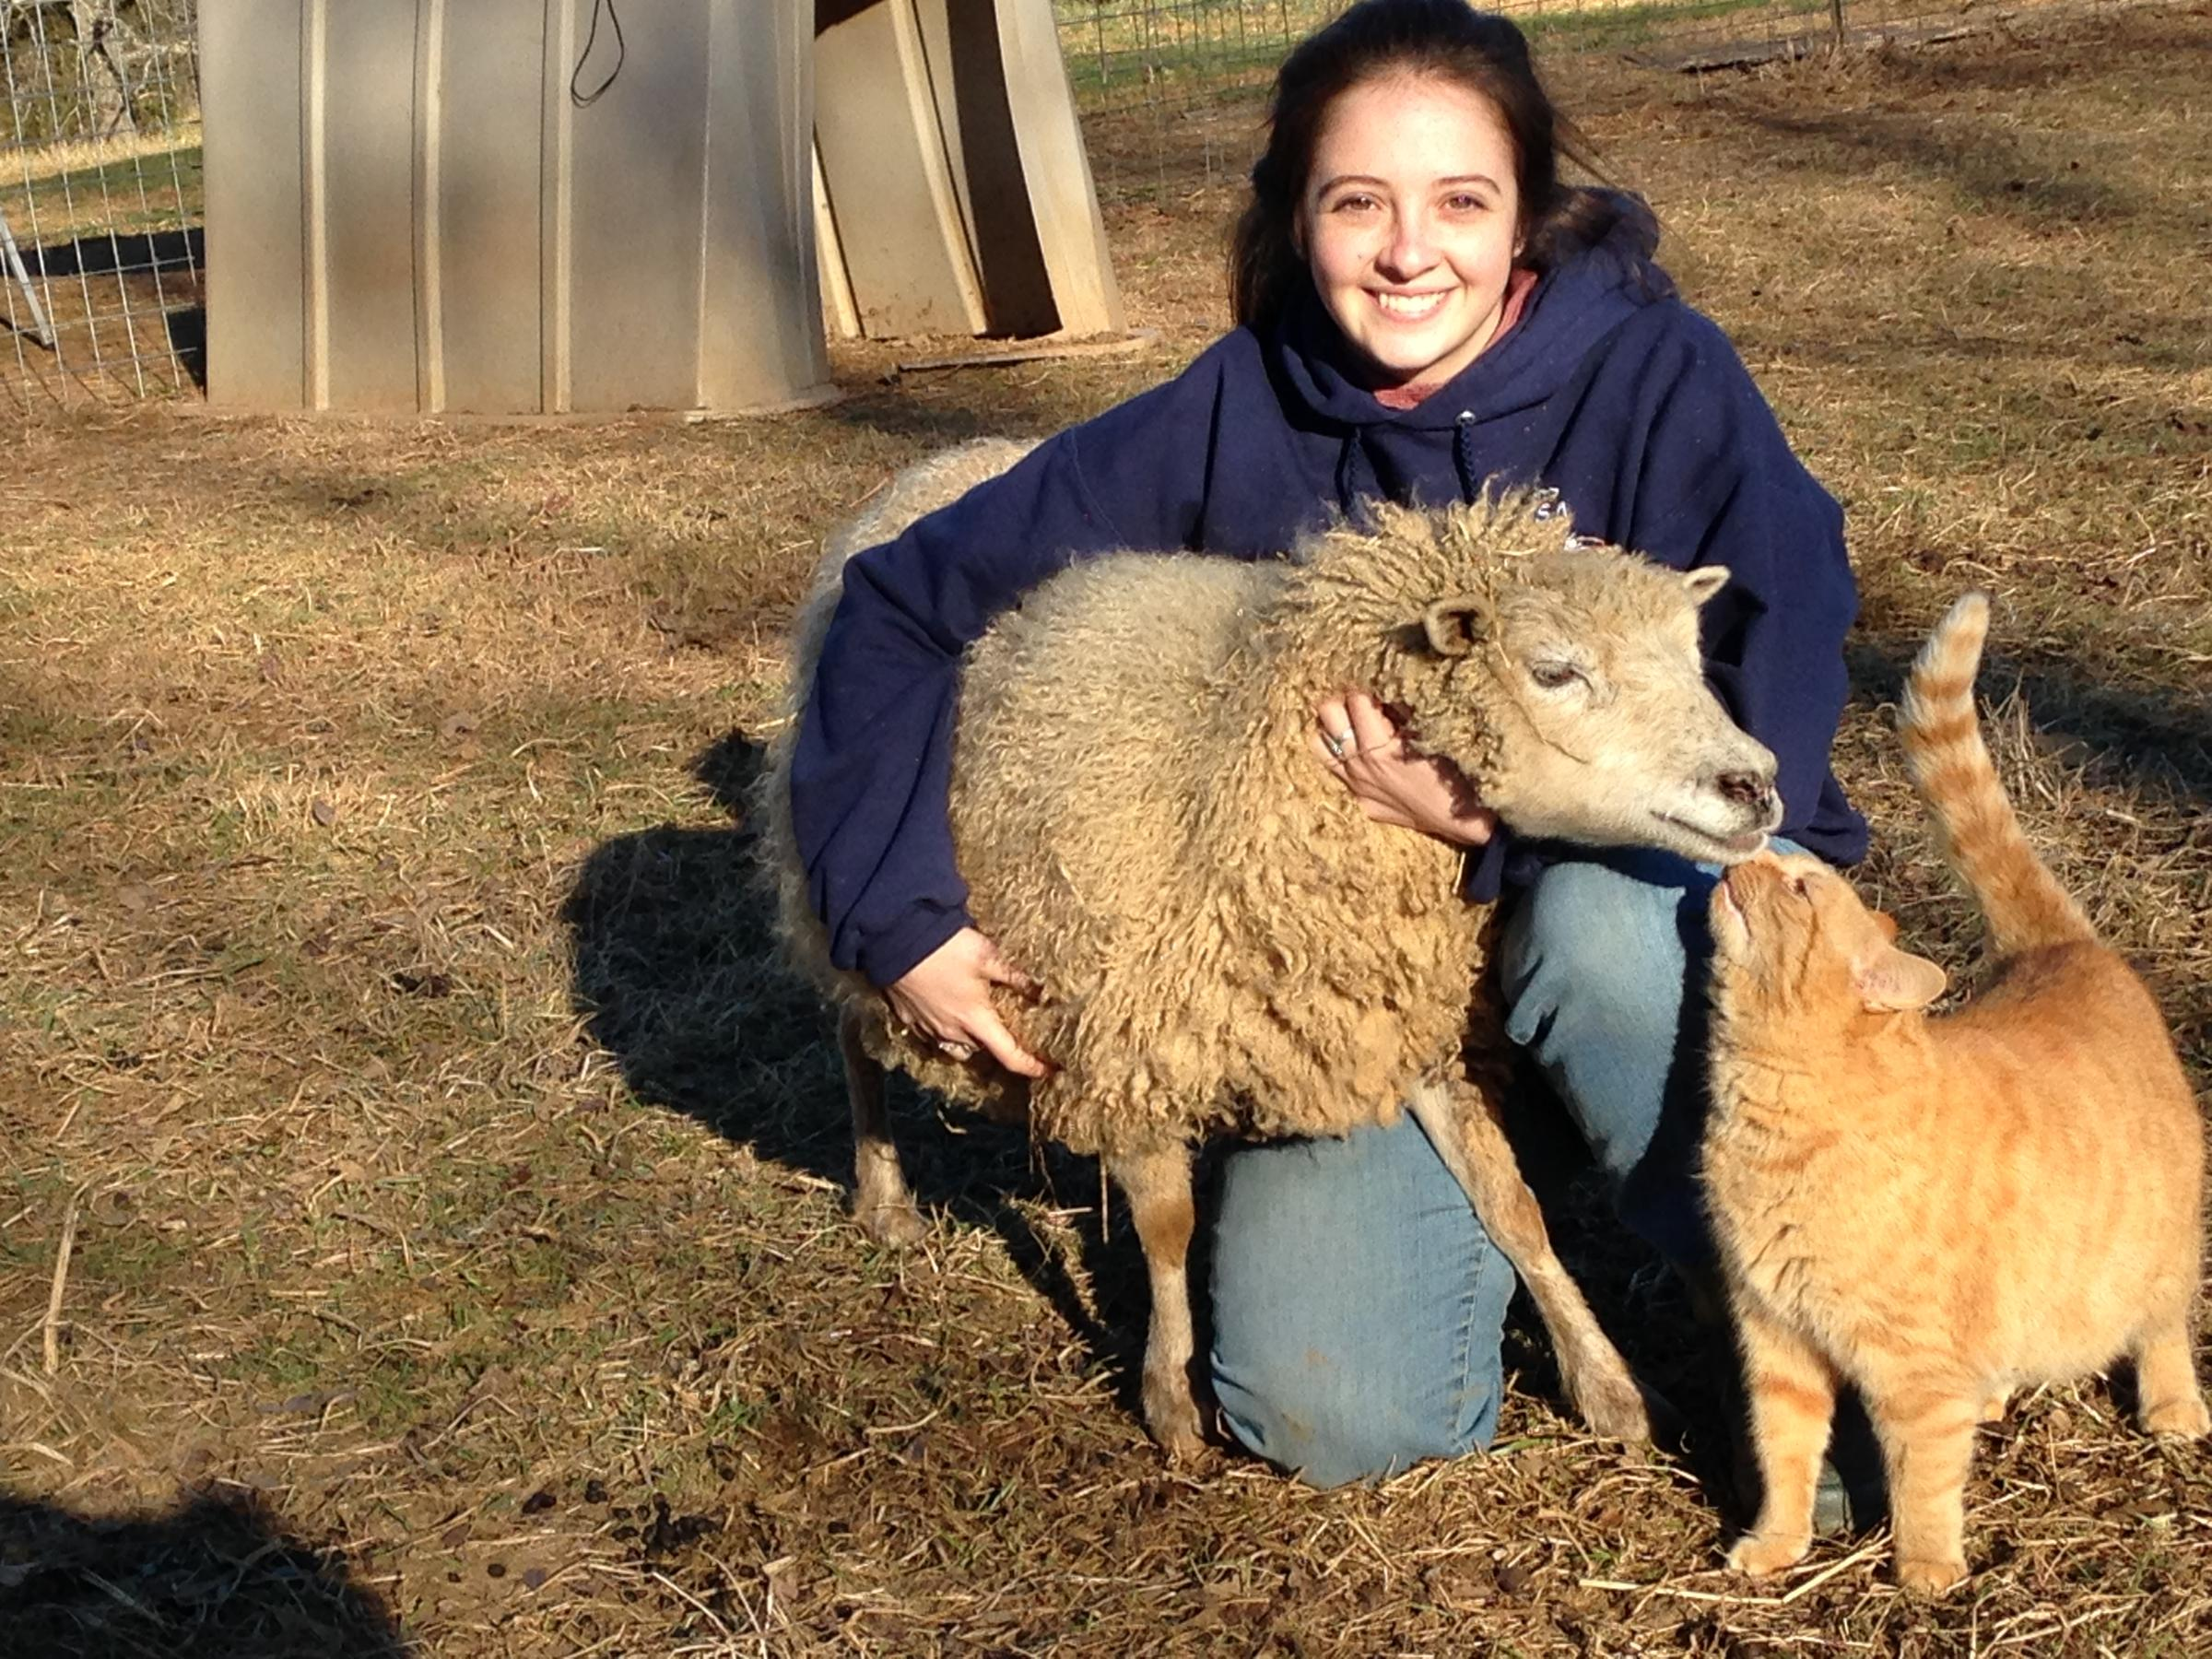 Virginia Student Joins Us Sheep Shearing Team Wvtf